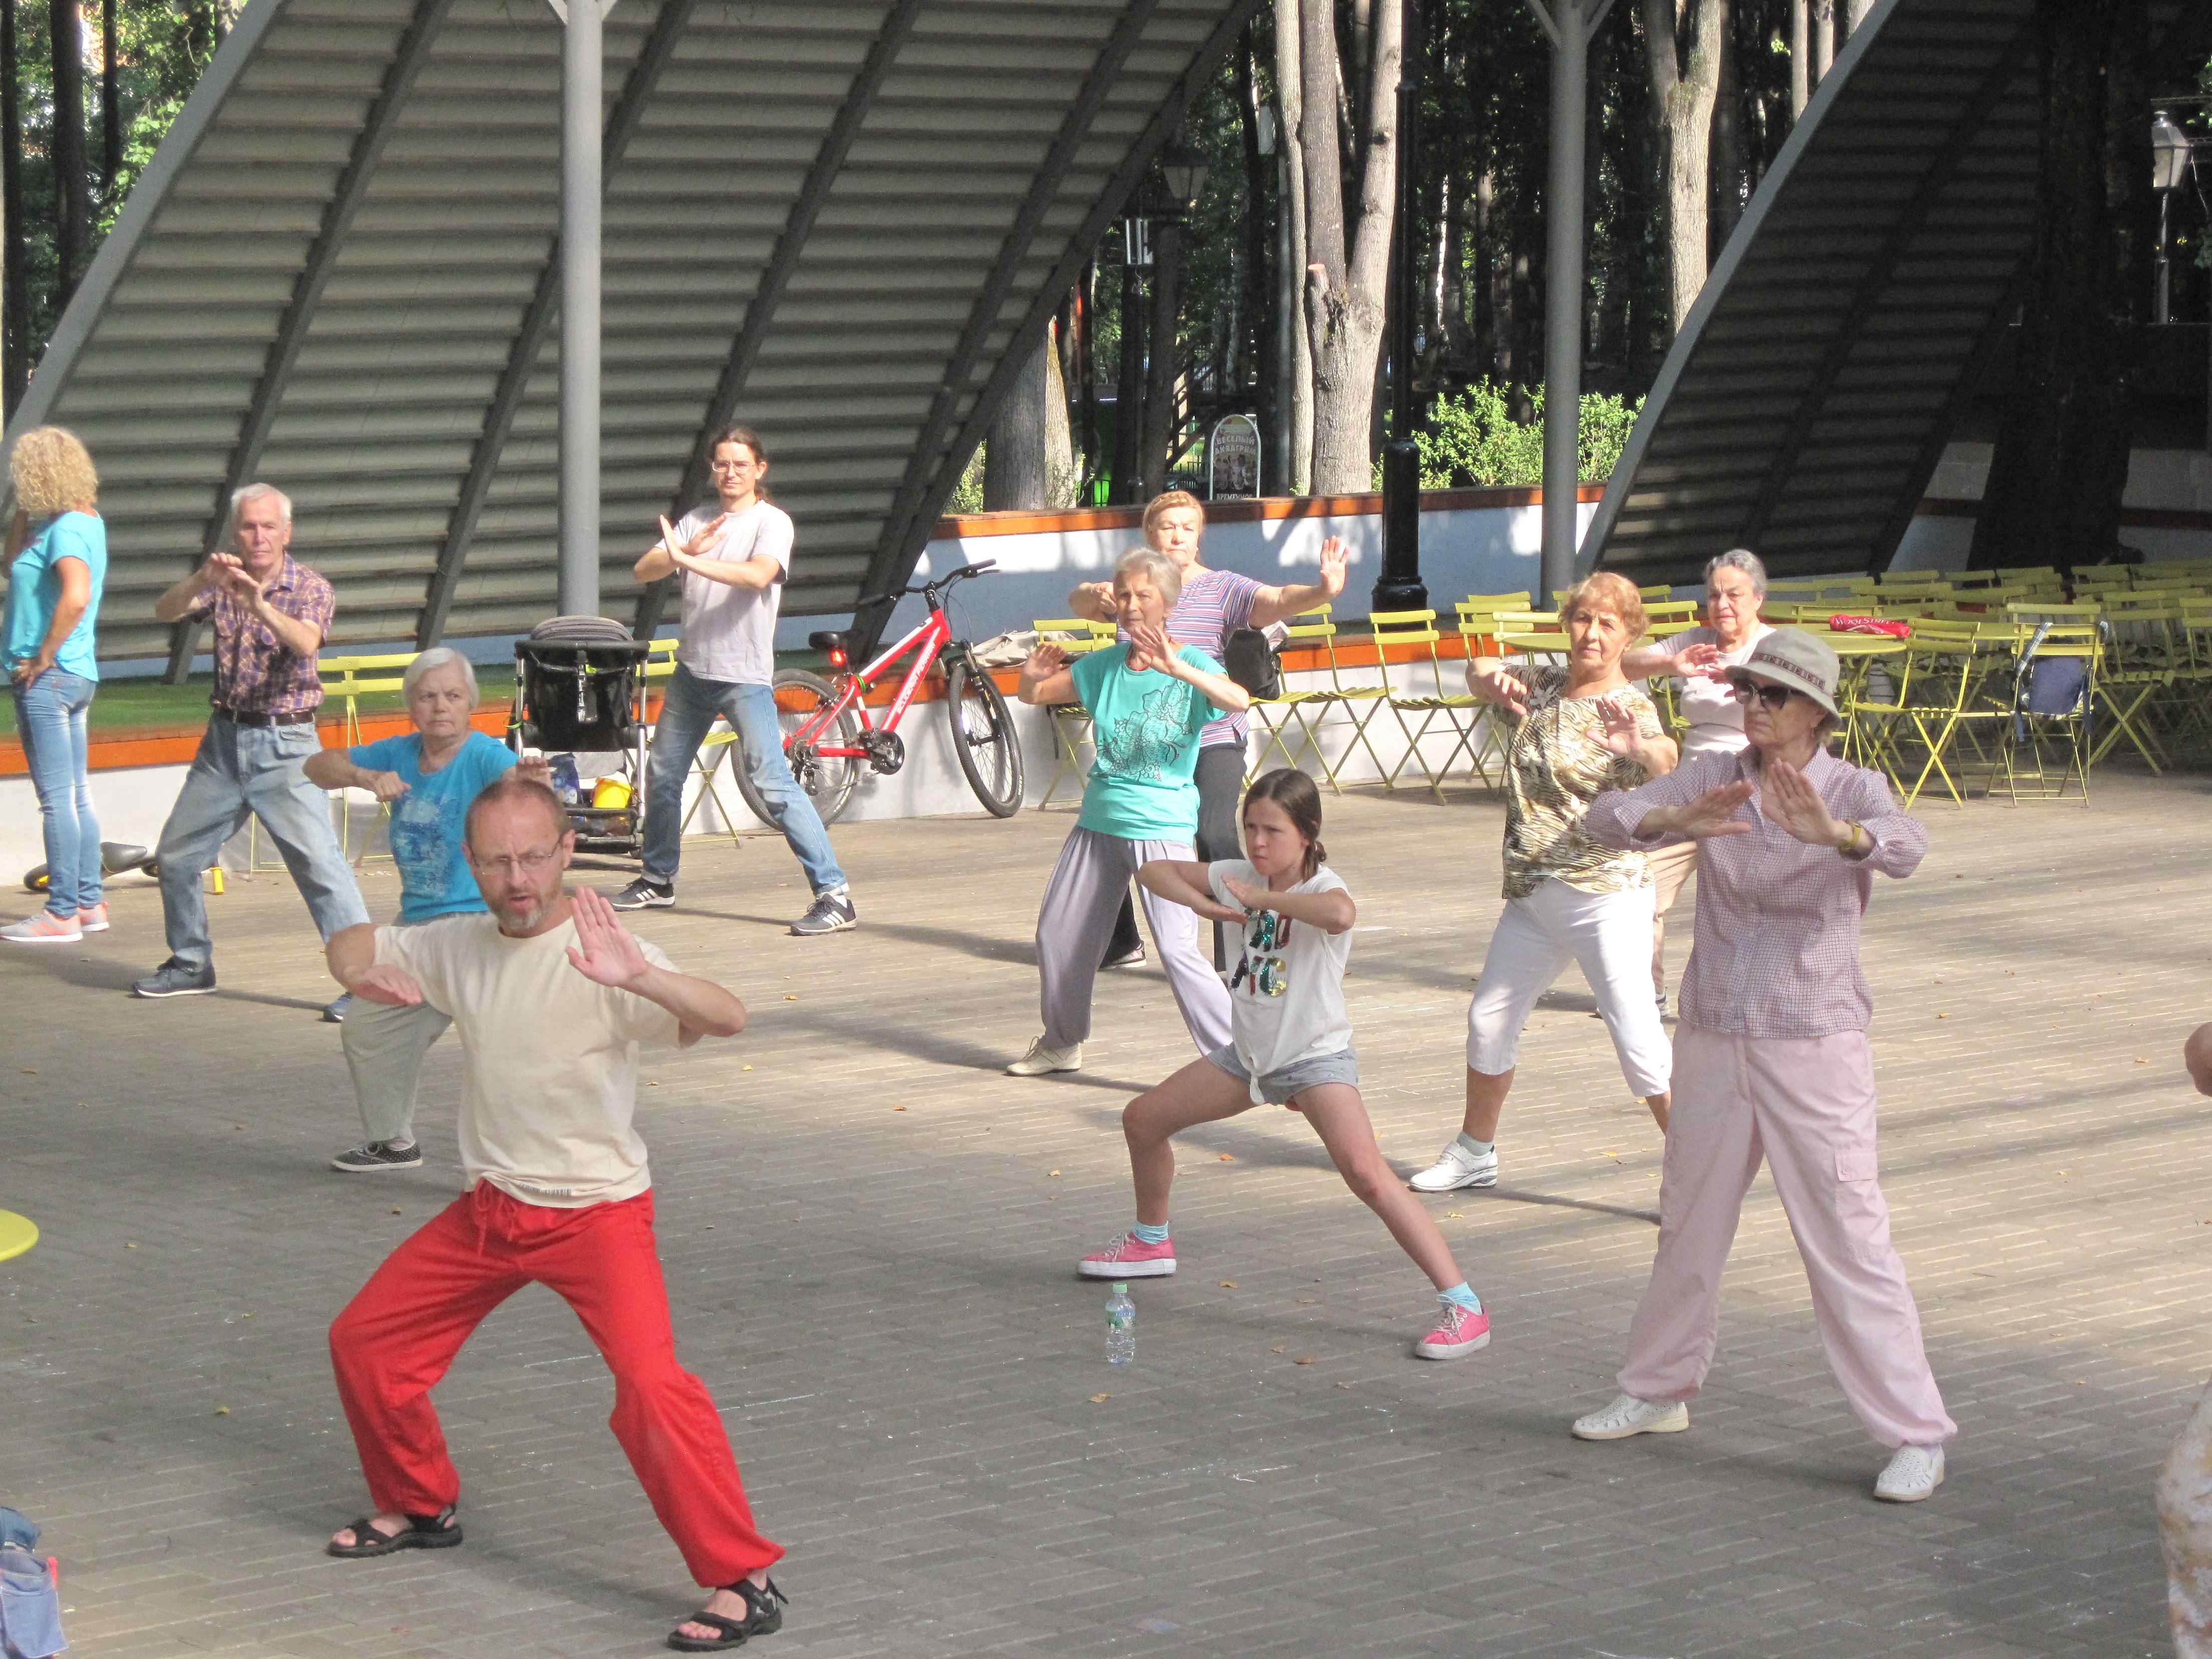 Babushkinsky Park of Culture and Rest in Moscow: photos, description, activities, leisure options, visitor reviews 38